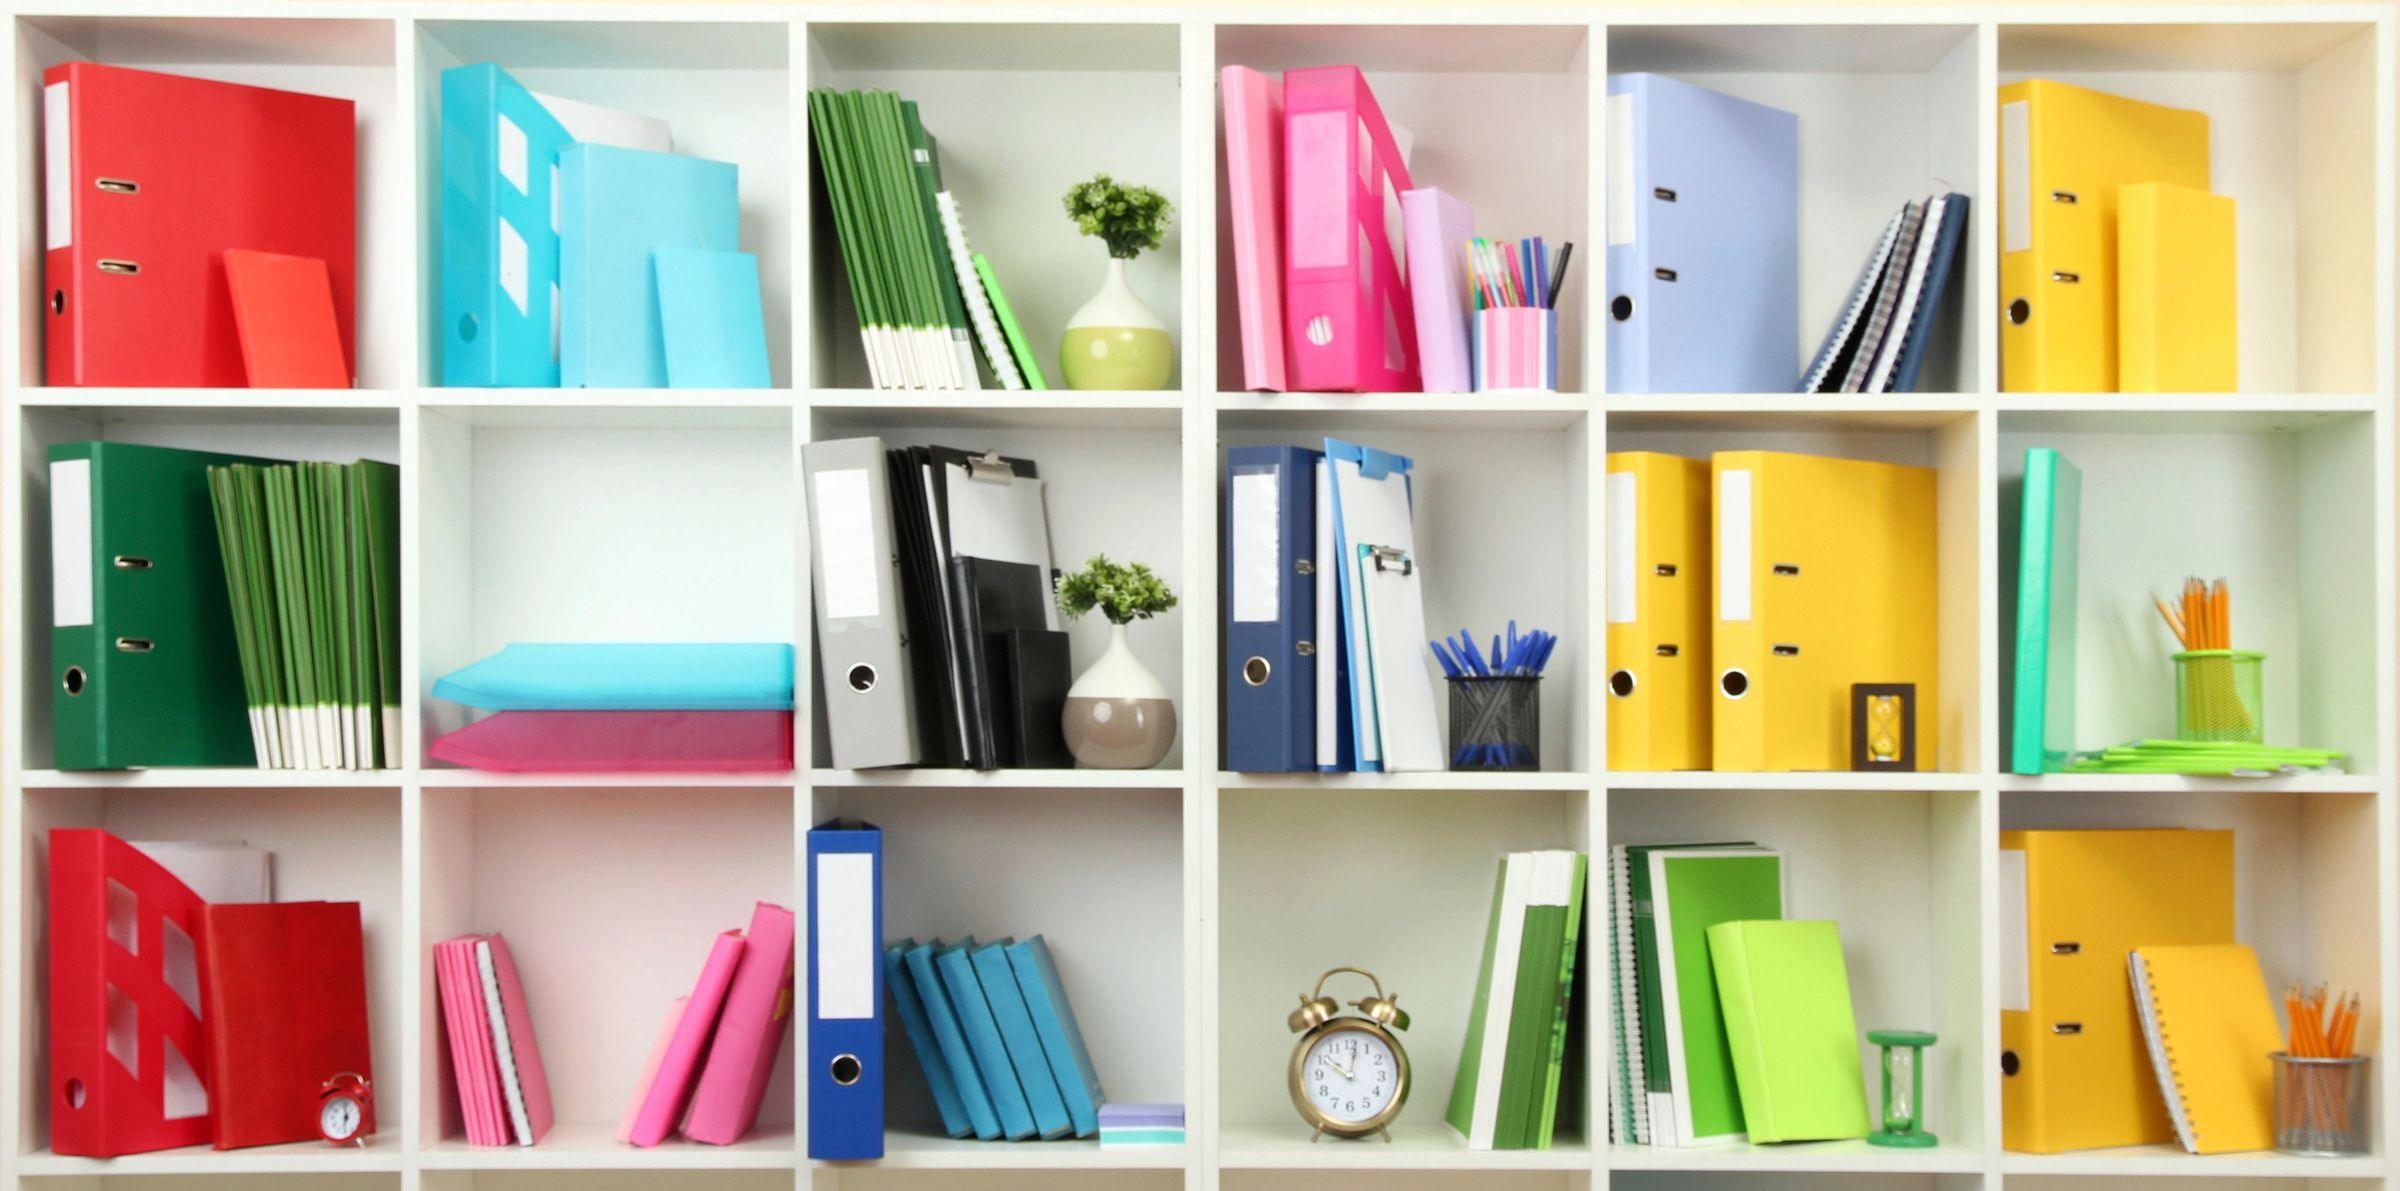 colorful bookkeeping binders on wall shelving unti